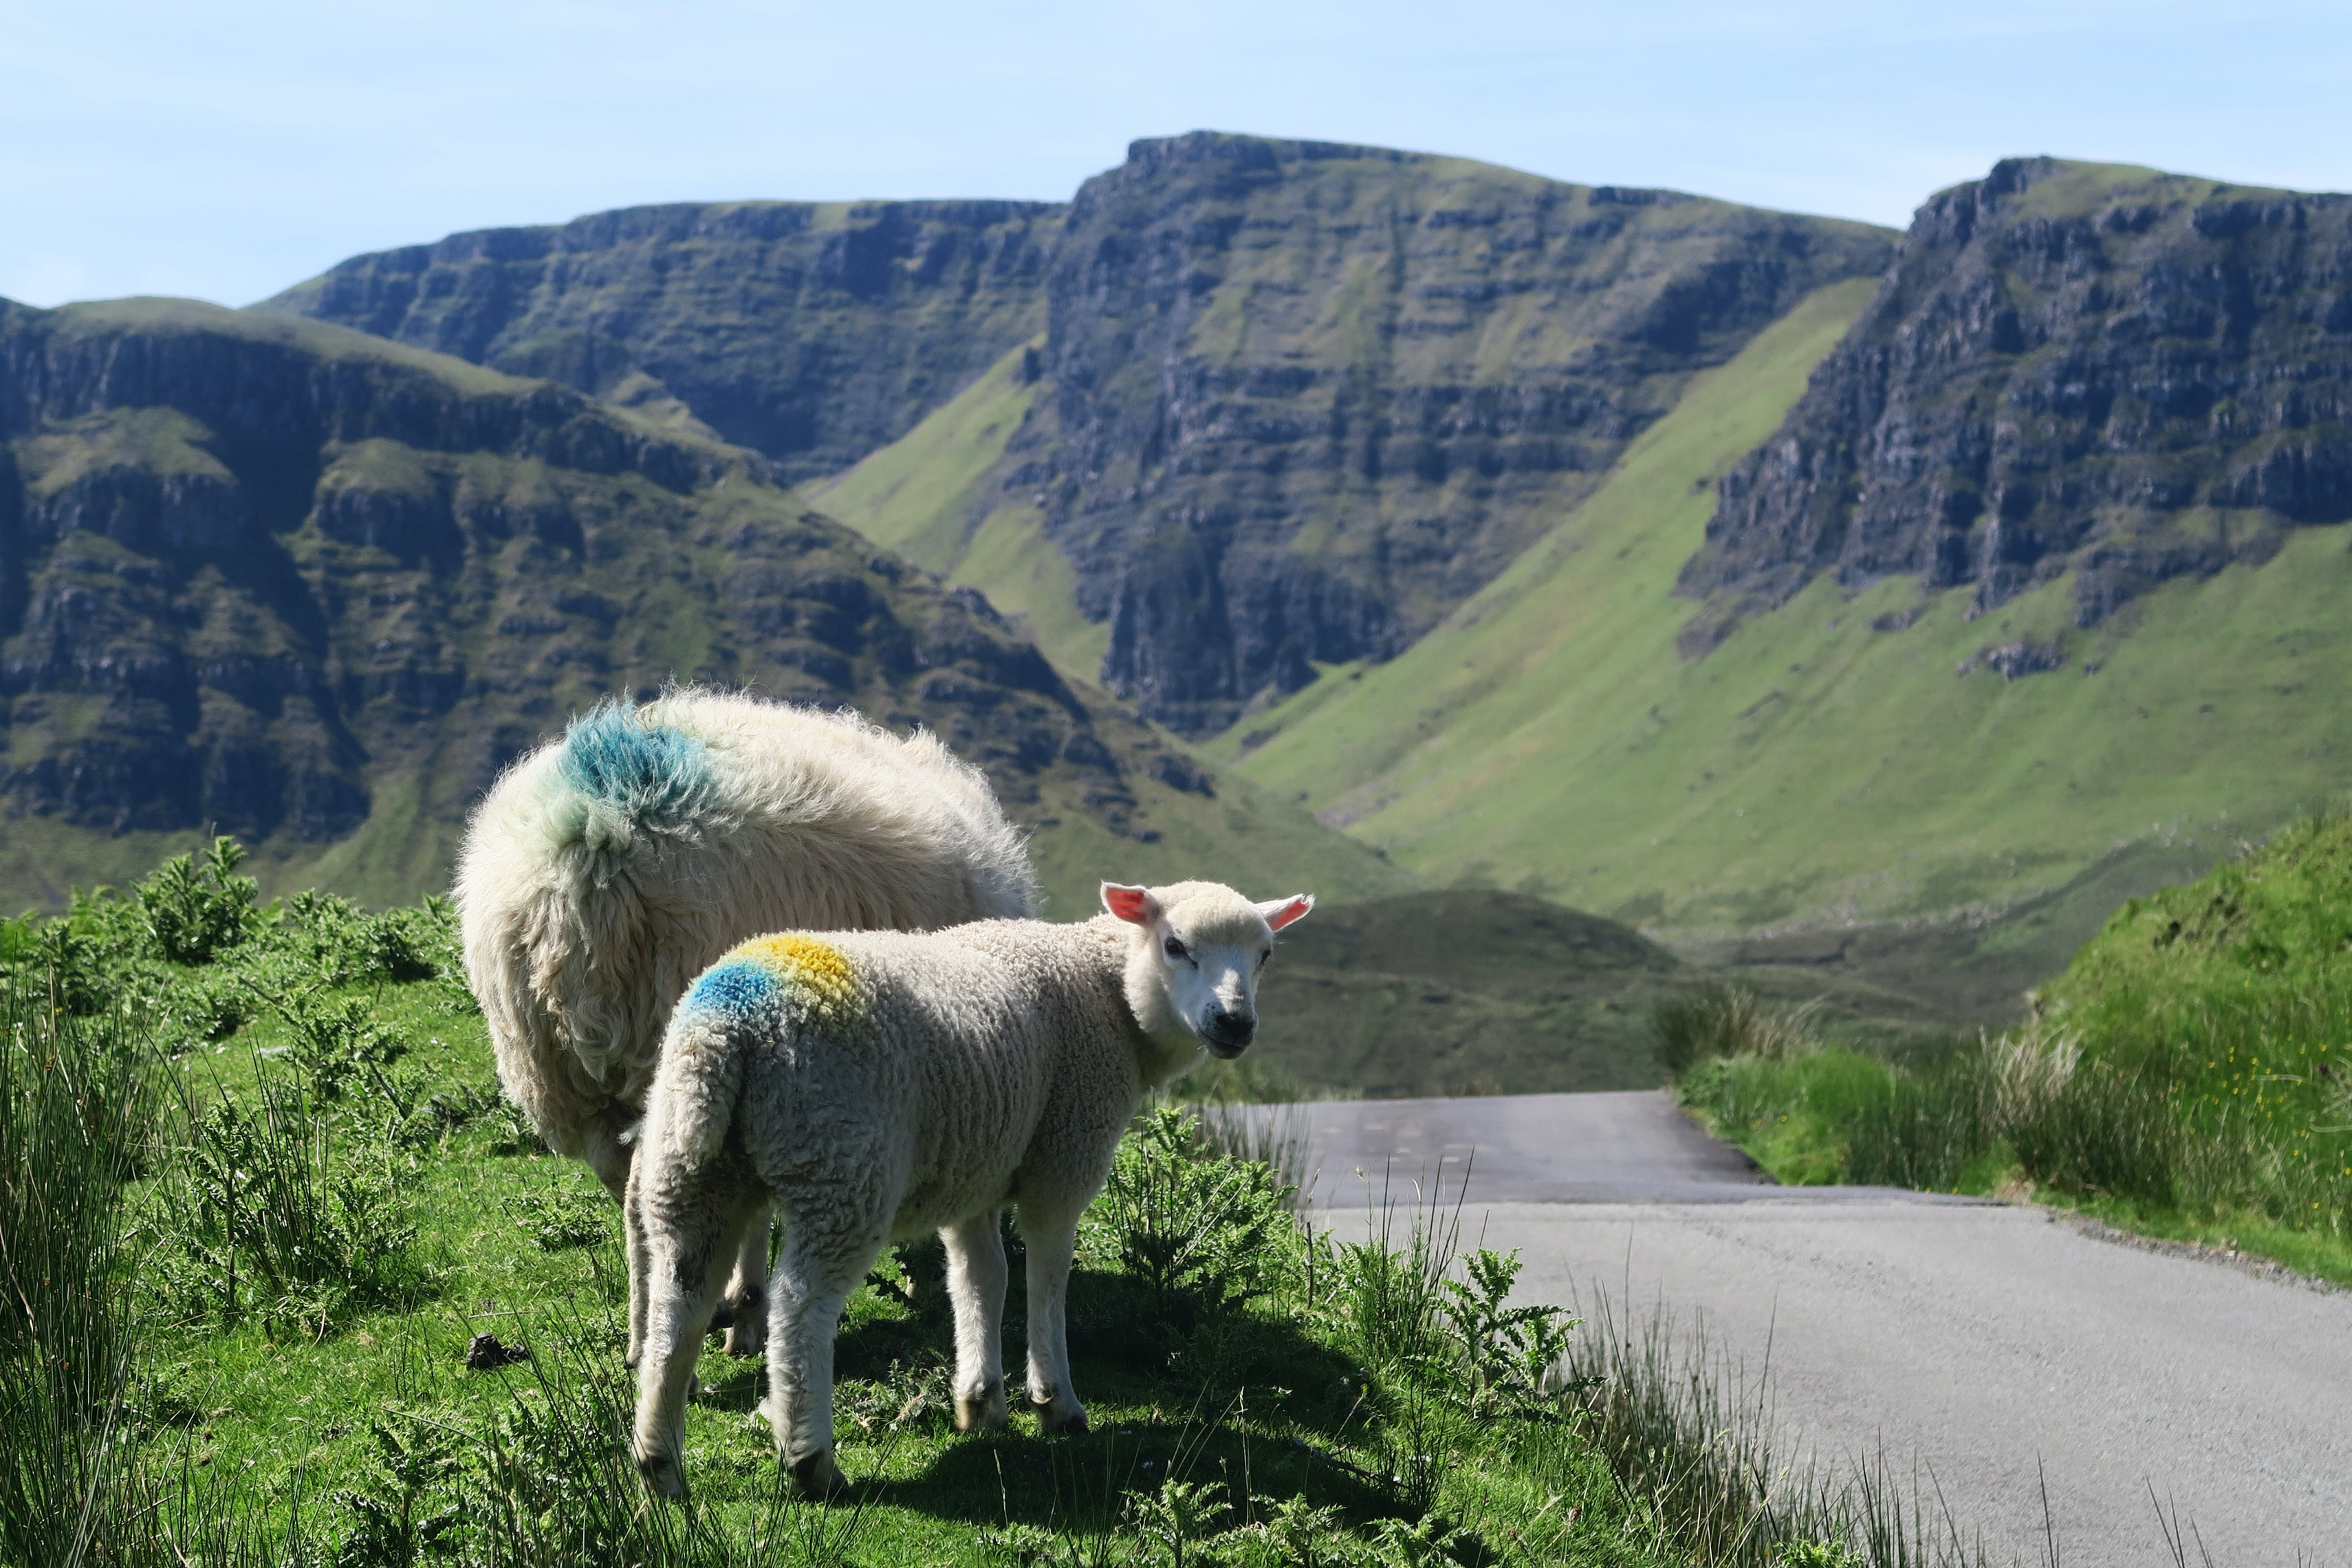 Sheep marked with colorful dots graze by the roadside